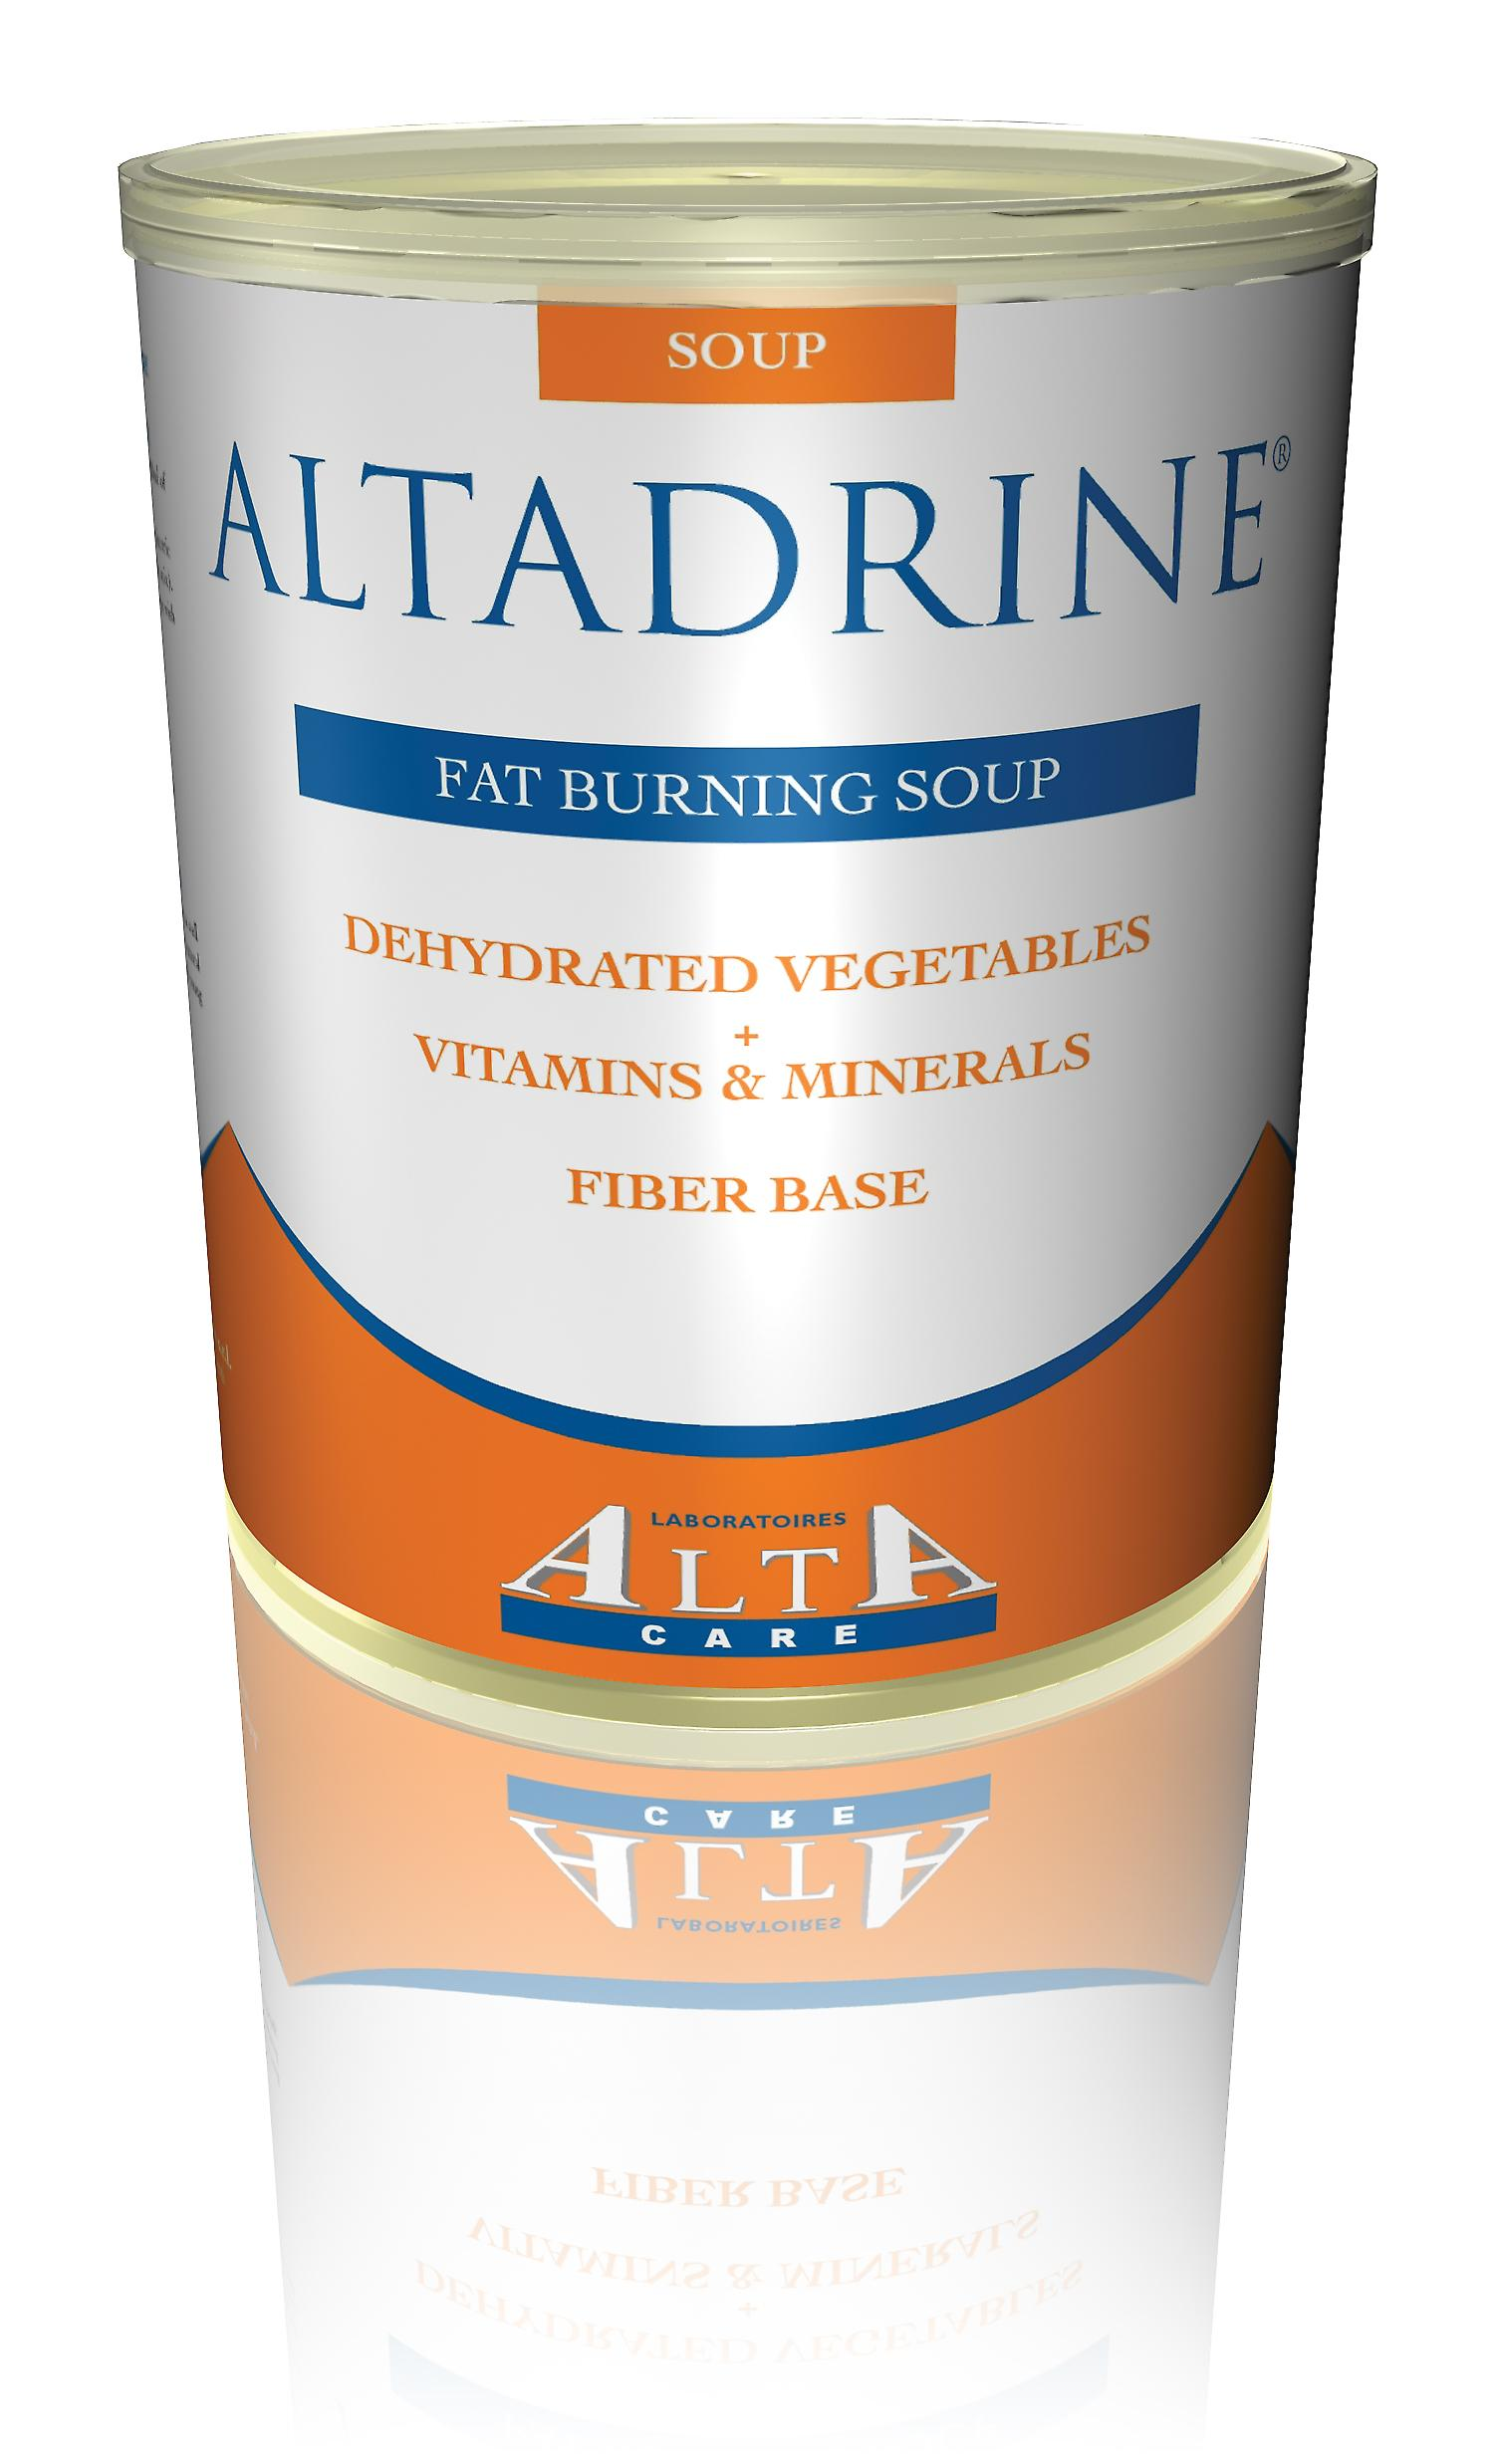 Altadrine Fat Burning Soup